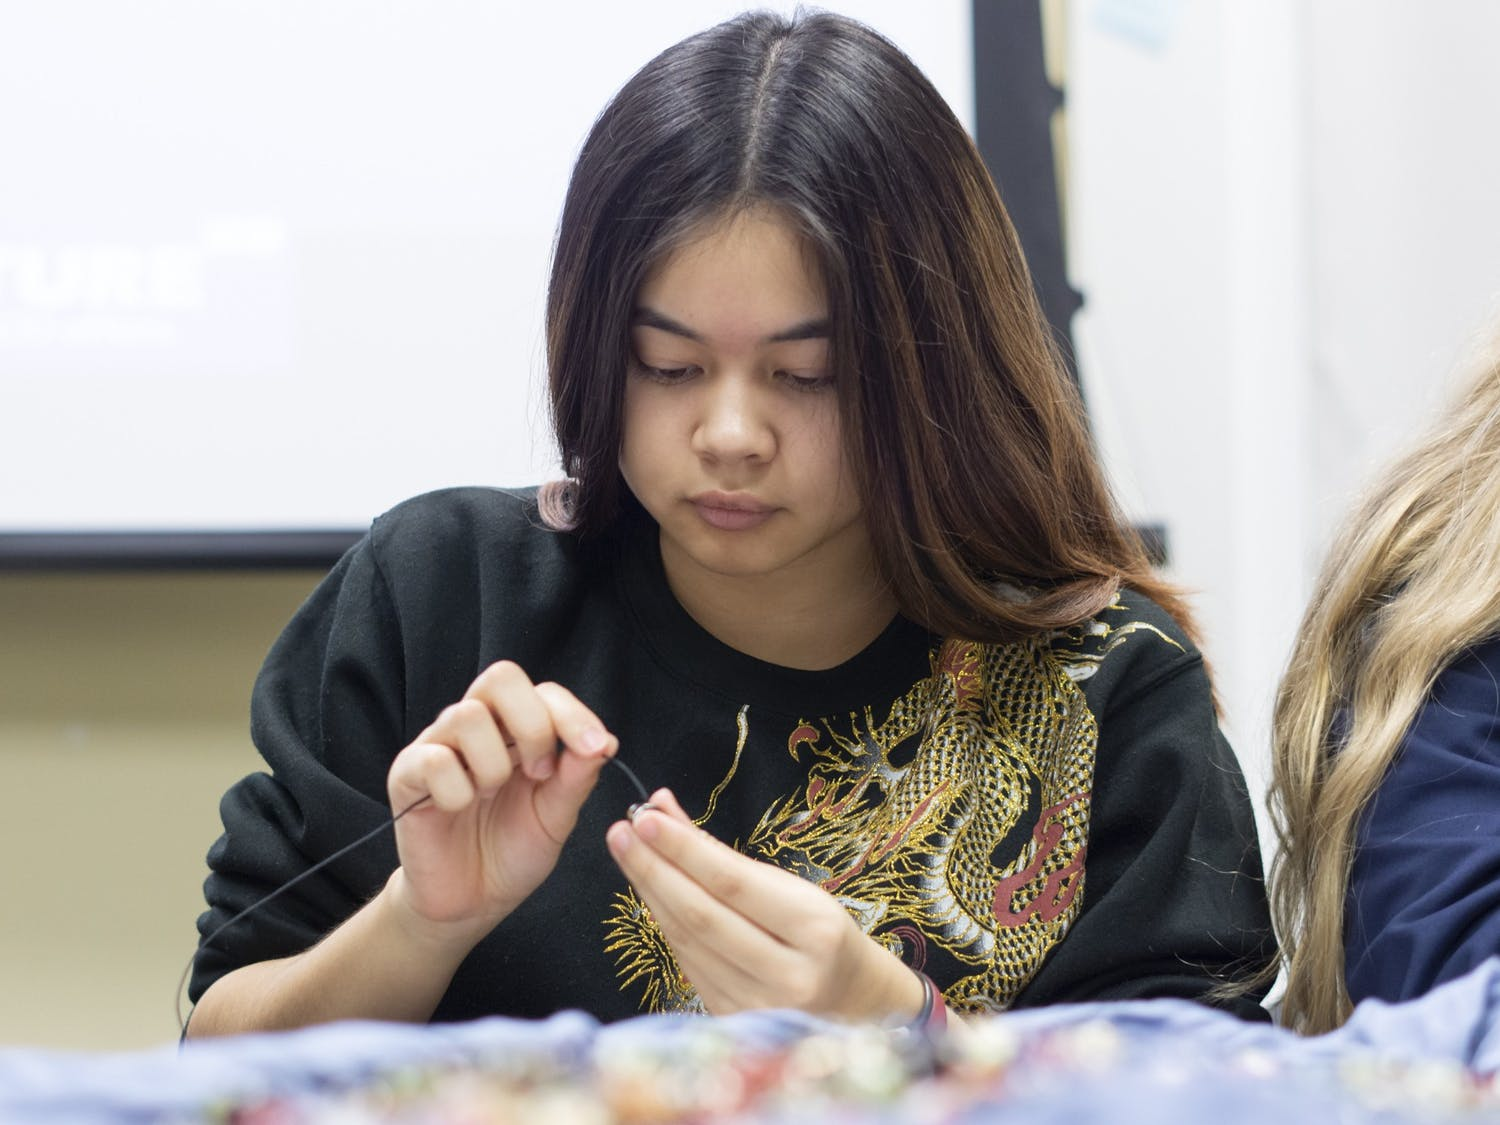 Makeila Cox, first-year biology major, makes a bracelet out of beads at the Carolina for Amani general body meeting at Campus Y, Jan. 29, 2020. The bracelets are sold once a month in the Pit to raise money for The Amani Children's Foundation  which funds New Life Home Orphanages in Kenya.